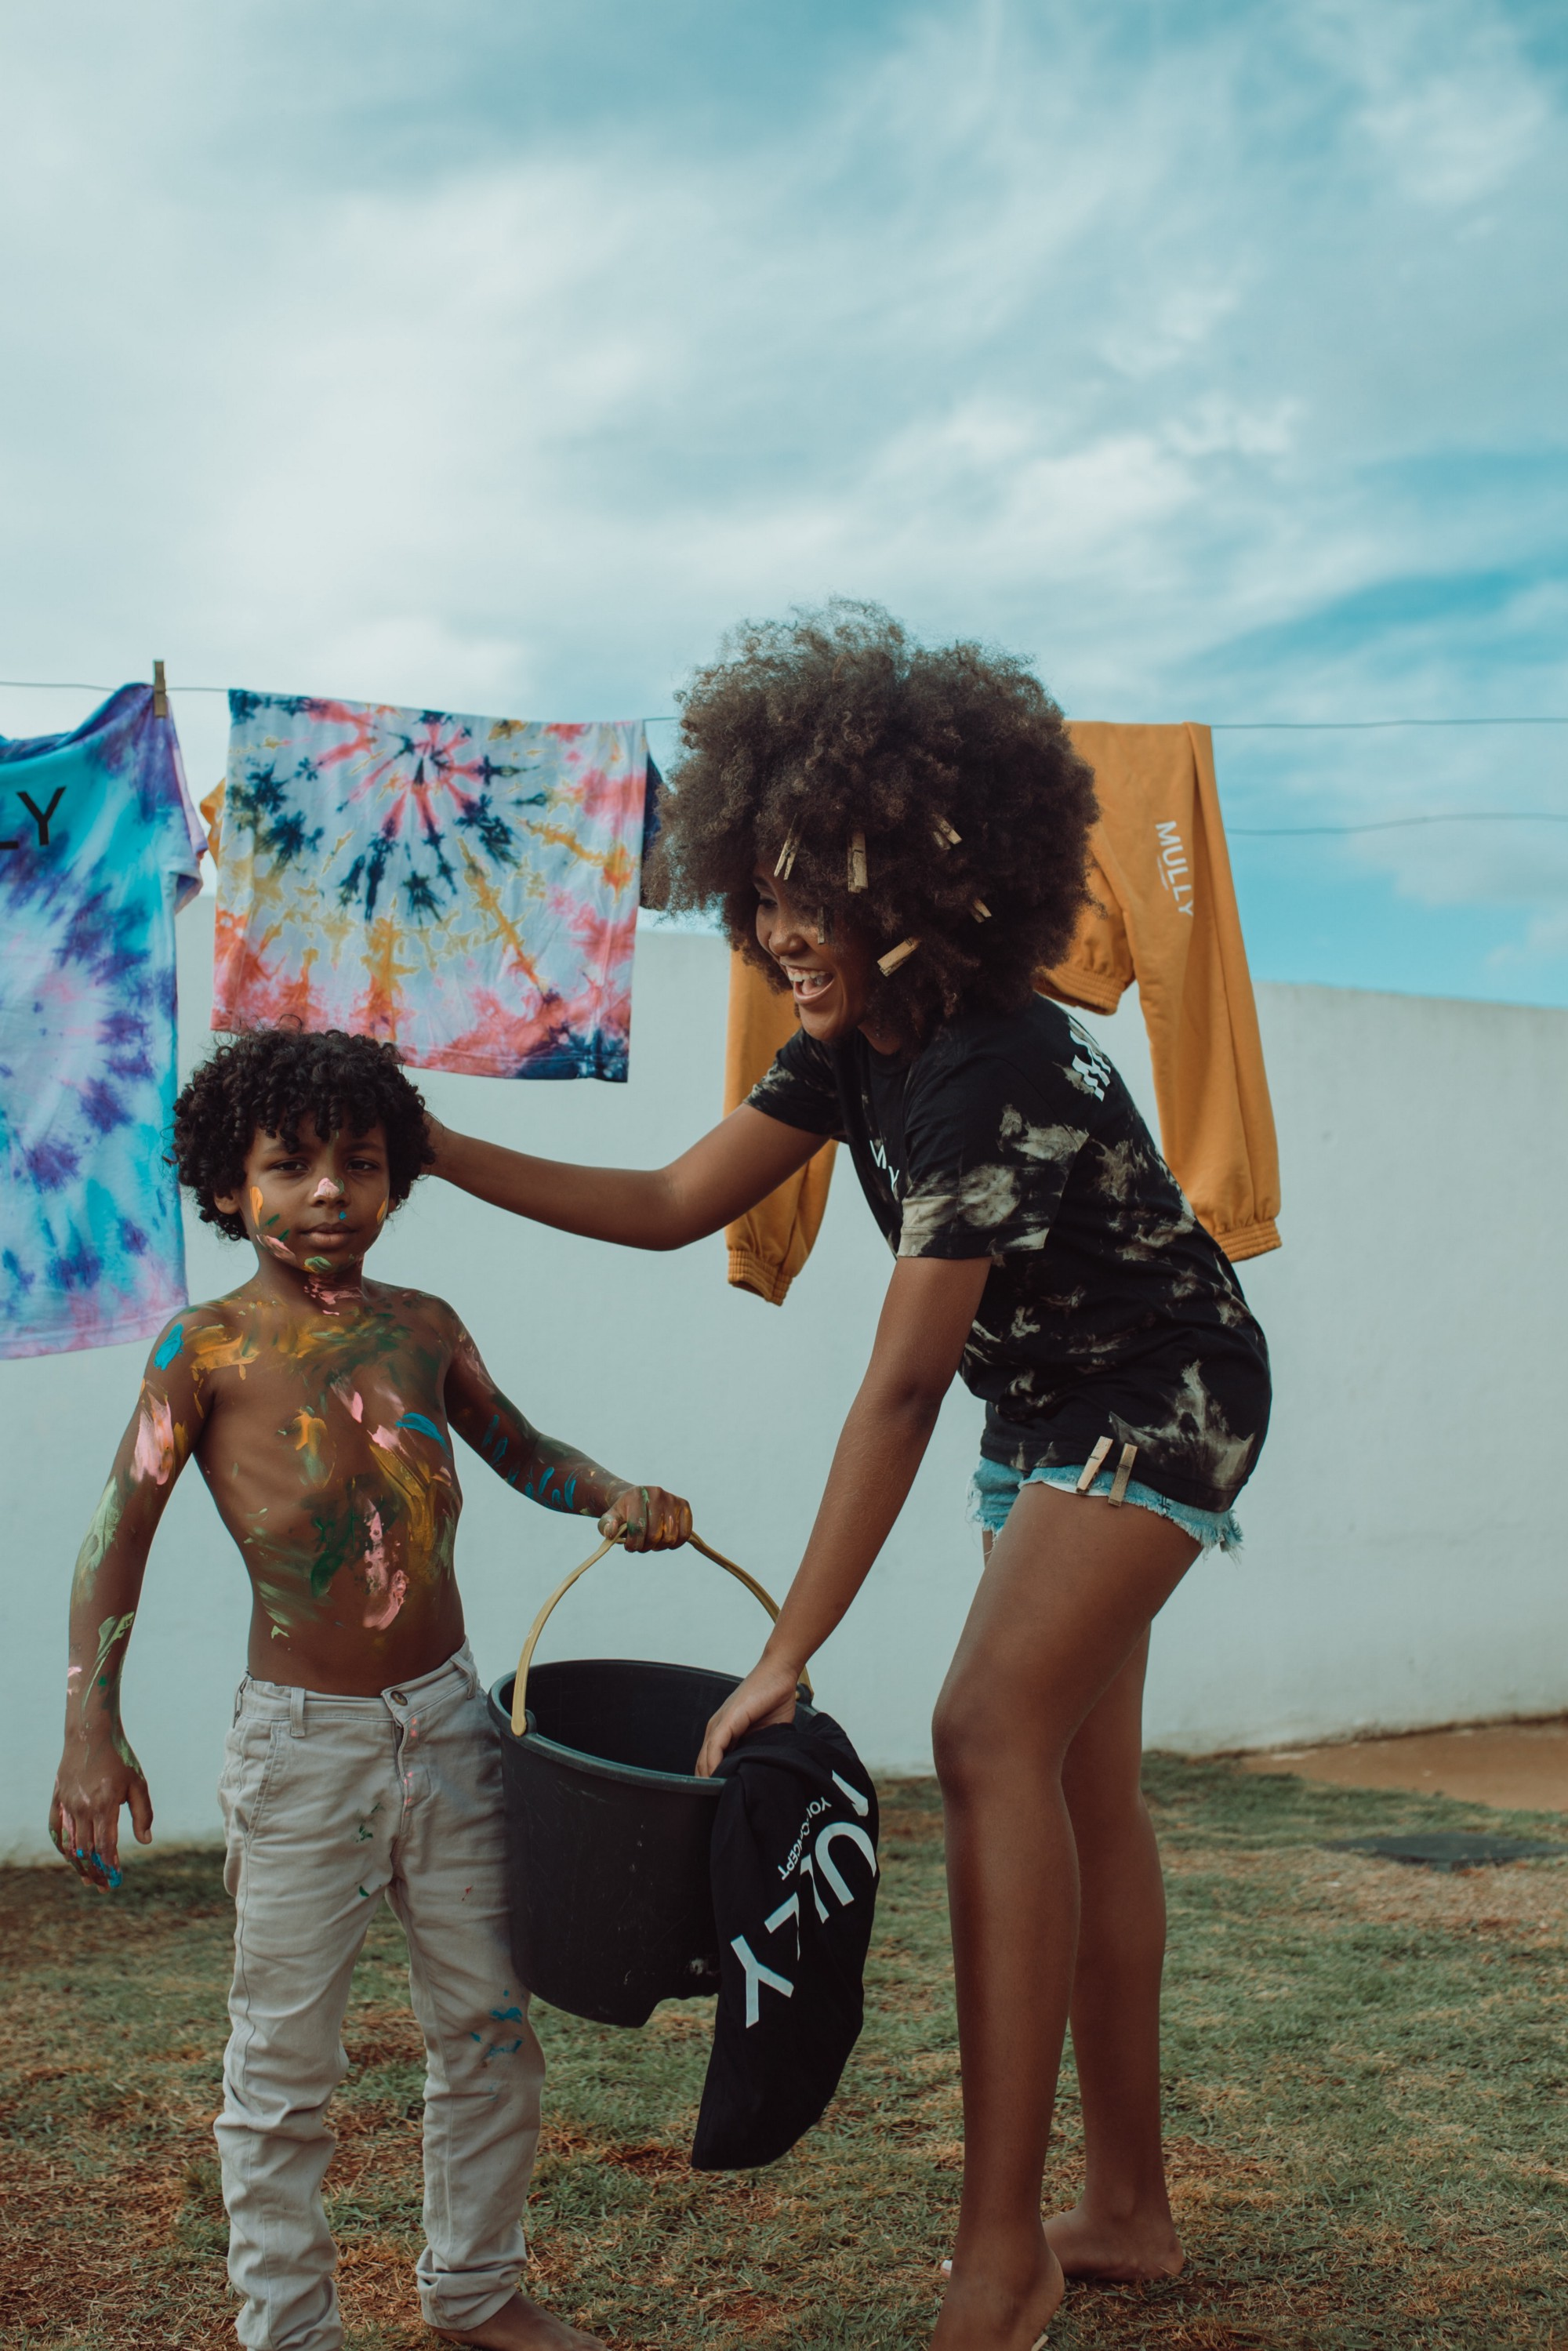 Young shirtless boy and older girl hanging up closes on an outside close line.